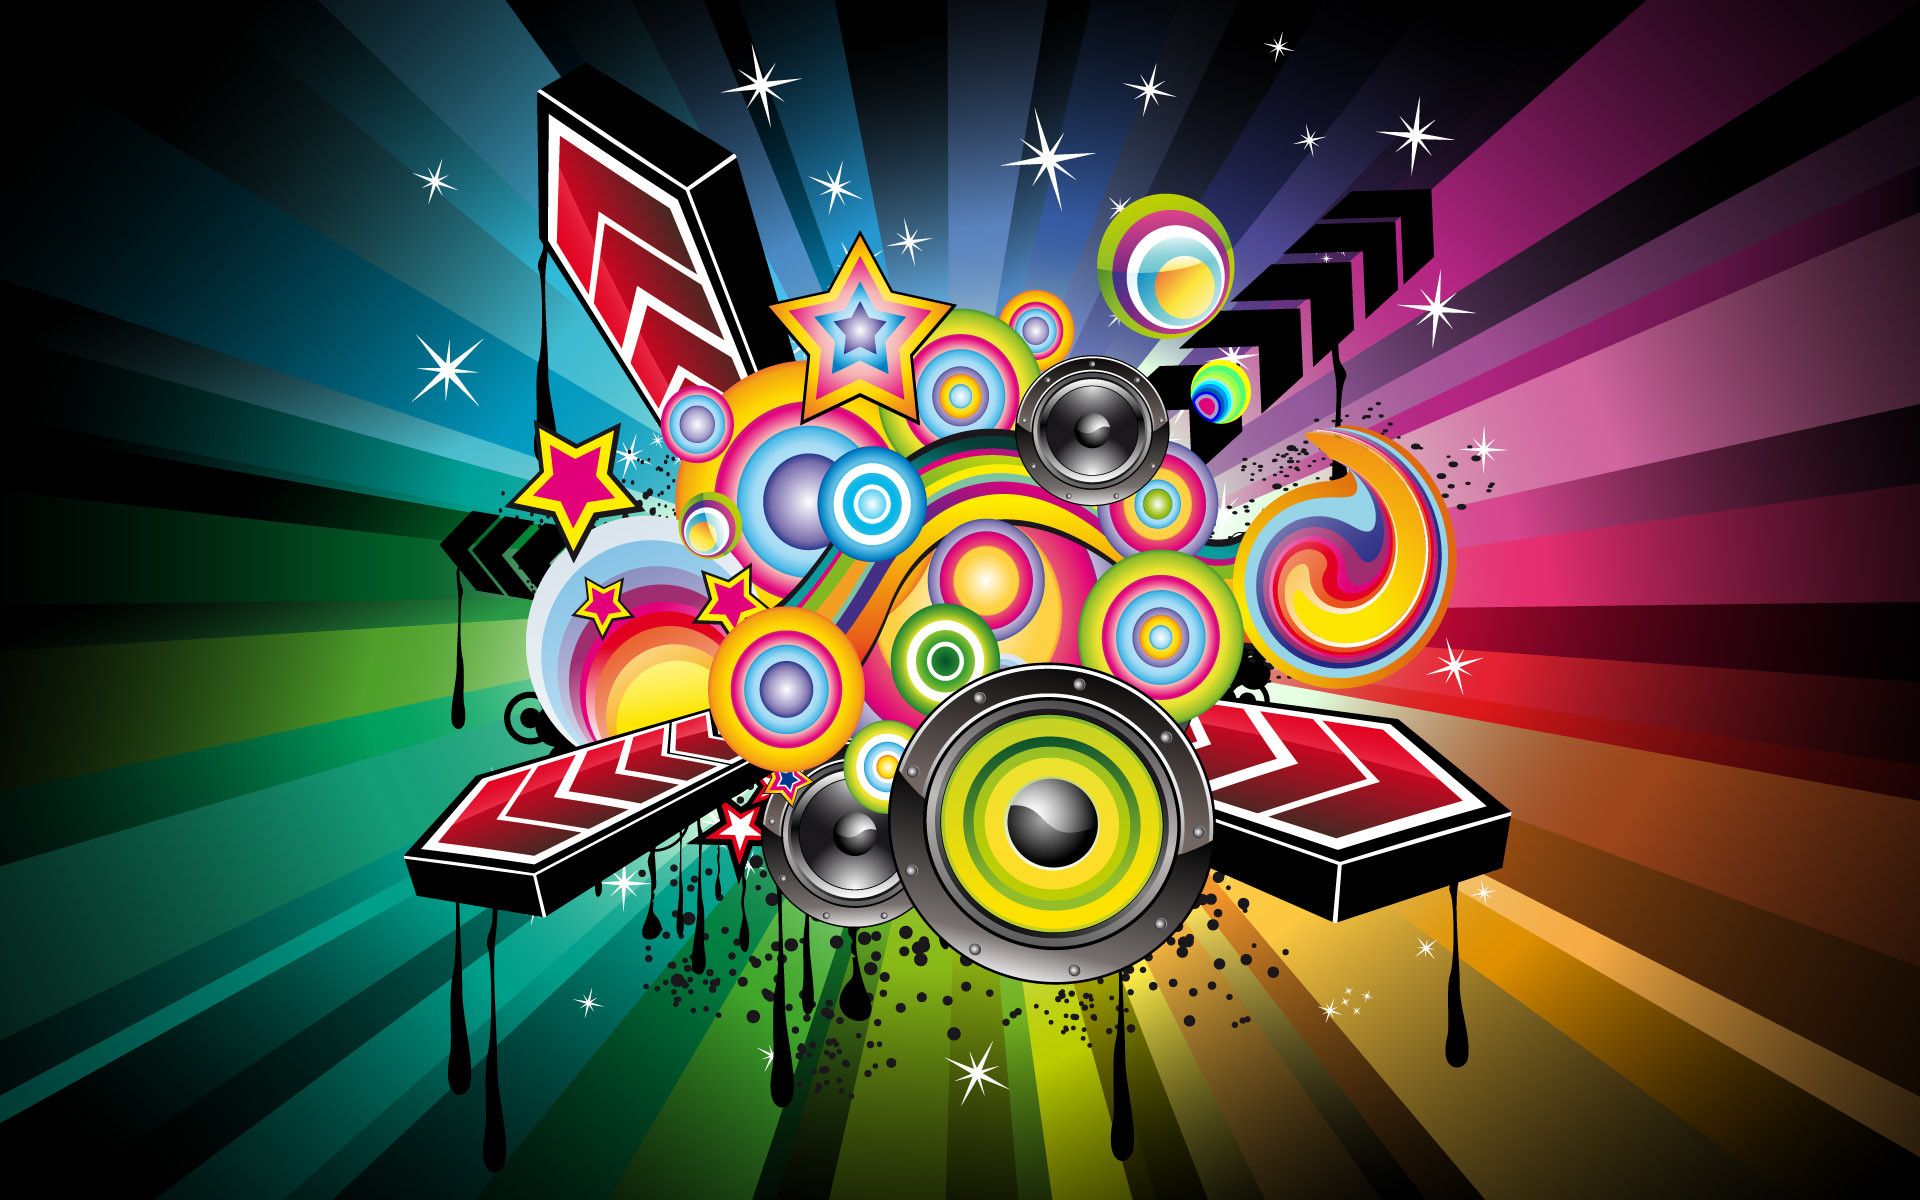 Amazing Wallpaper Music Macbook - 739581-house-music-backgrounds-1920x1200-for-macbook  Graphic_625220.jpg